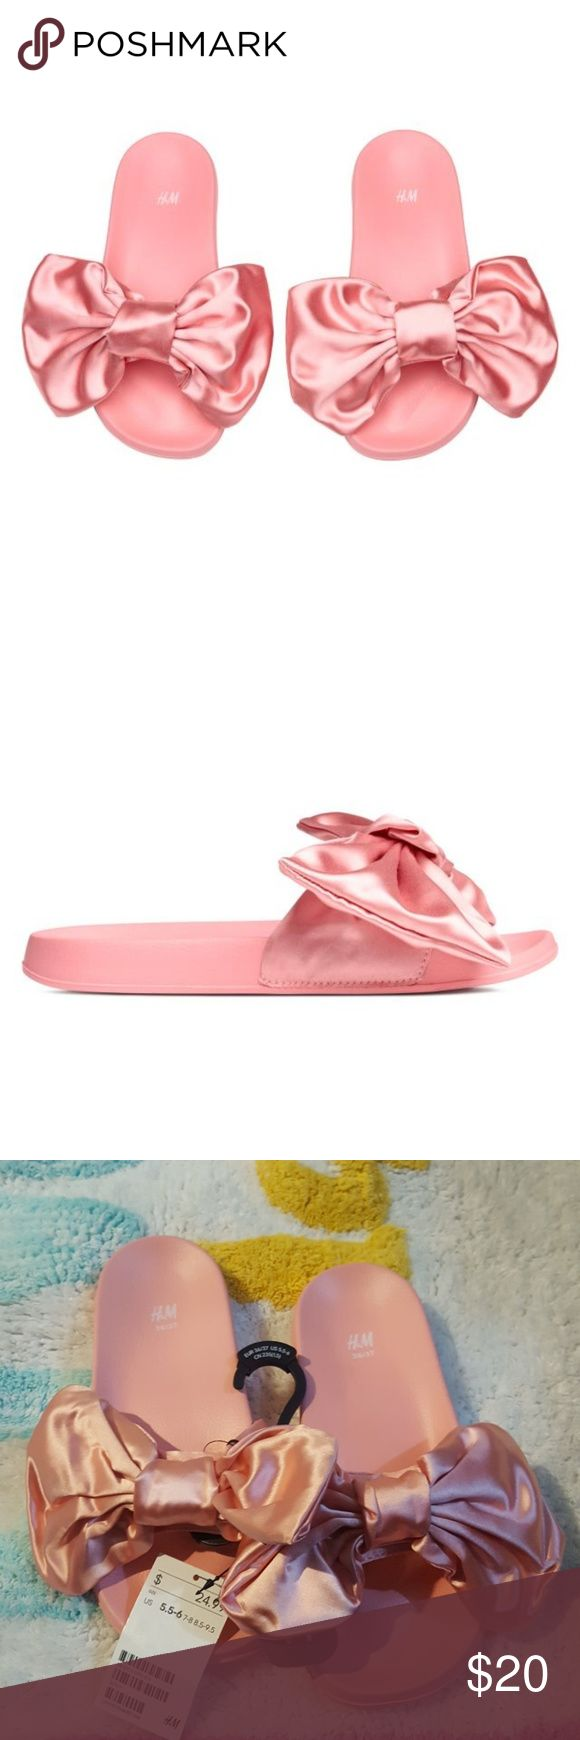 """H&M Slippers in satin Slippers in satin and plastic with a large bow at the front and embossed soles.  """"Keep away from fire. The items shown with this symbol are not required to comply with flammability performance requirements of """"""""The Nightwear Safety Regulations 1987"""""""" and have therefore not been tested to those requirements.""""  COMPOSITIONLining and sock: Polyester 100%Outer sole: Ethylene Vinyl Acetate 100%Upper: Polyester 100% H&M Shoes Slippers"""